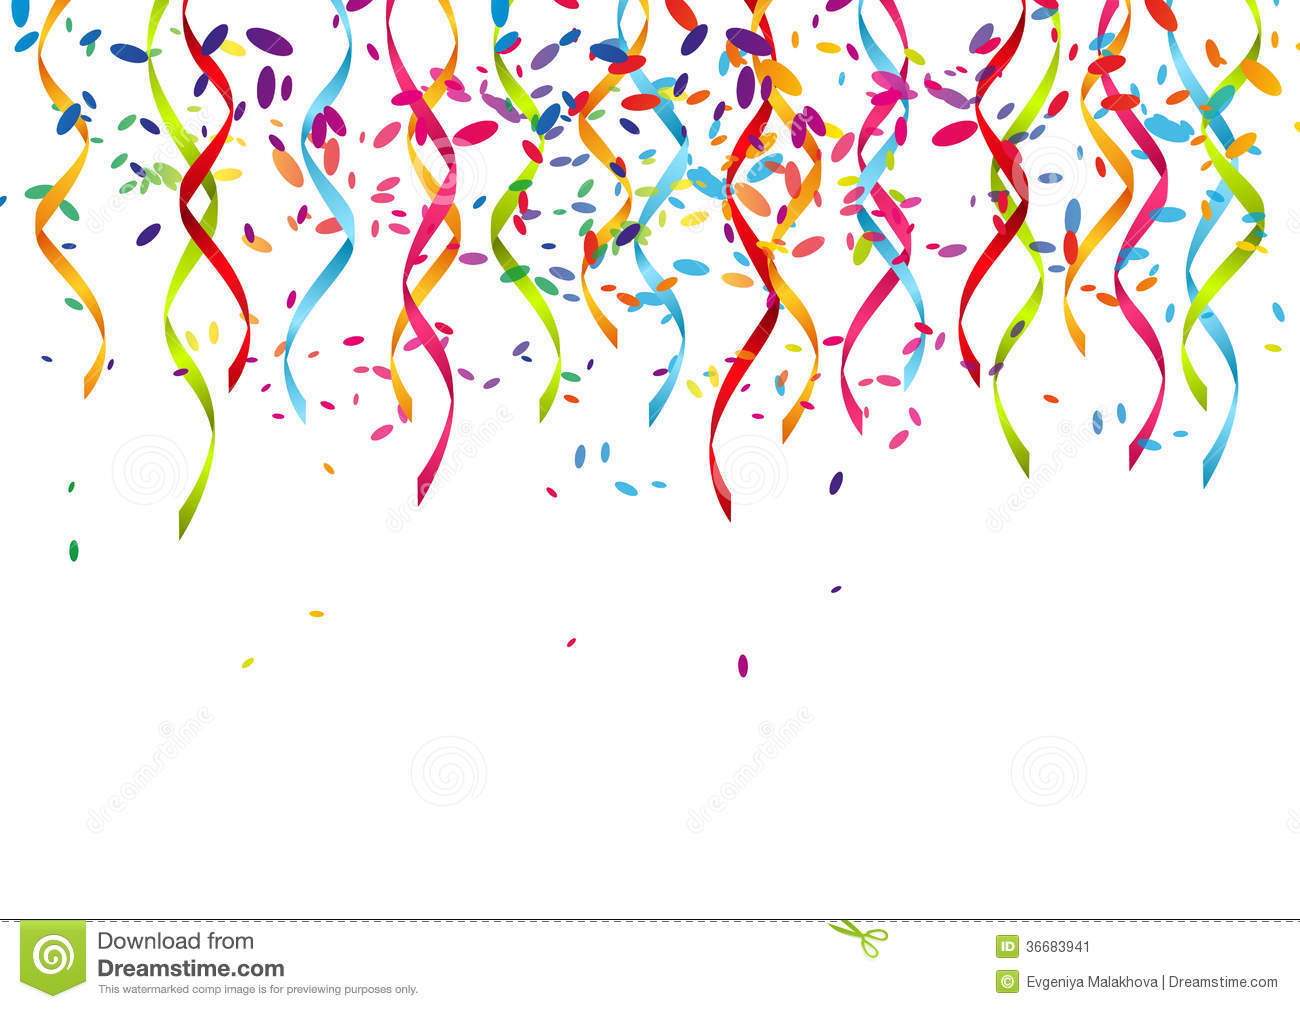 Party background stock vector. Illustration of decoration - 36683941